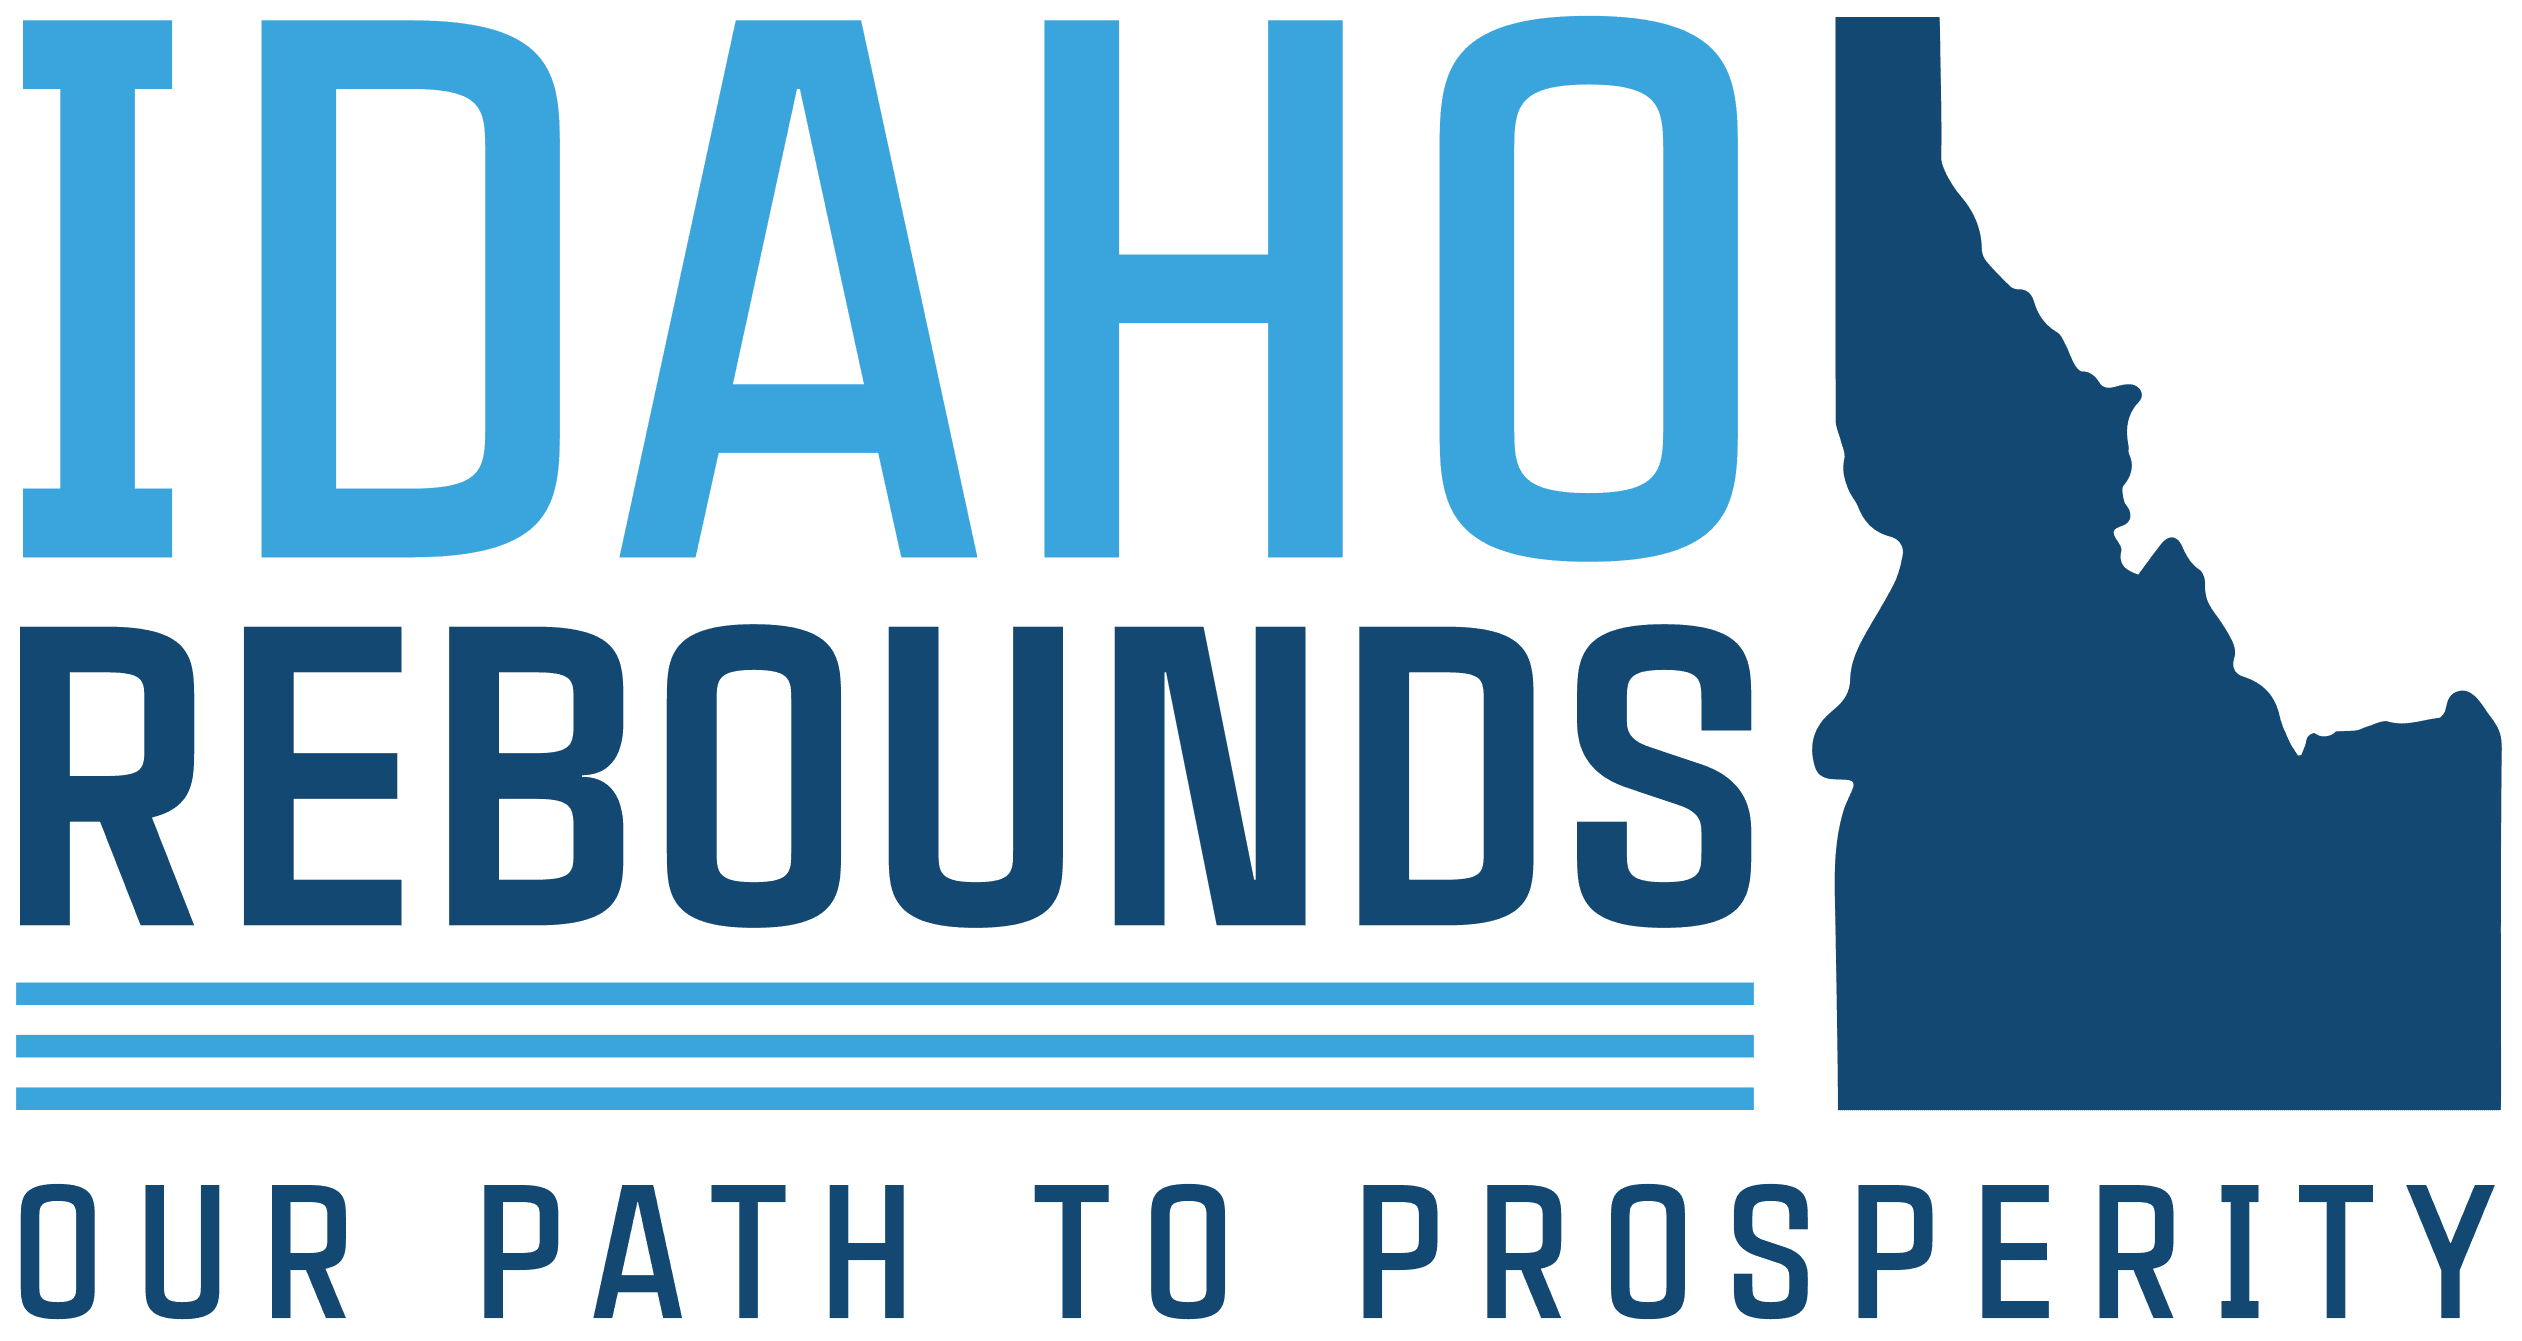 IdahoRebounds Opens in new window